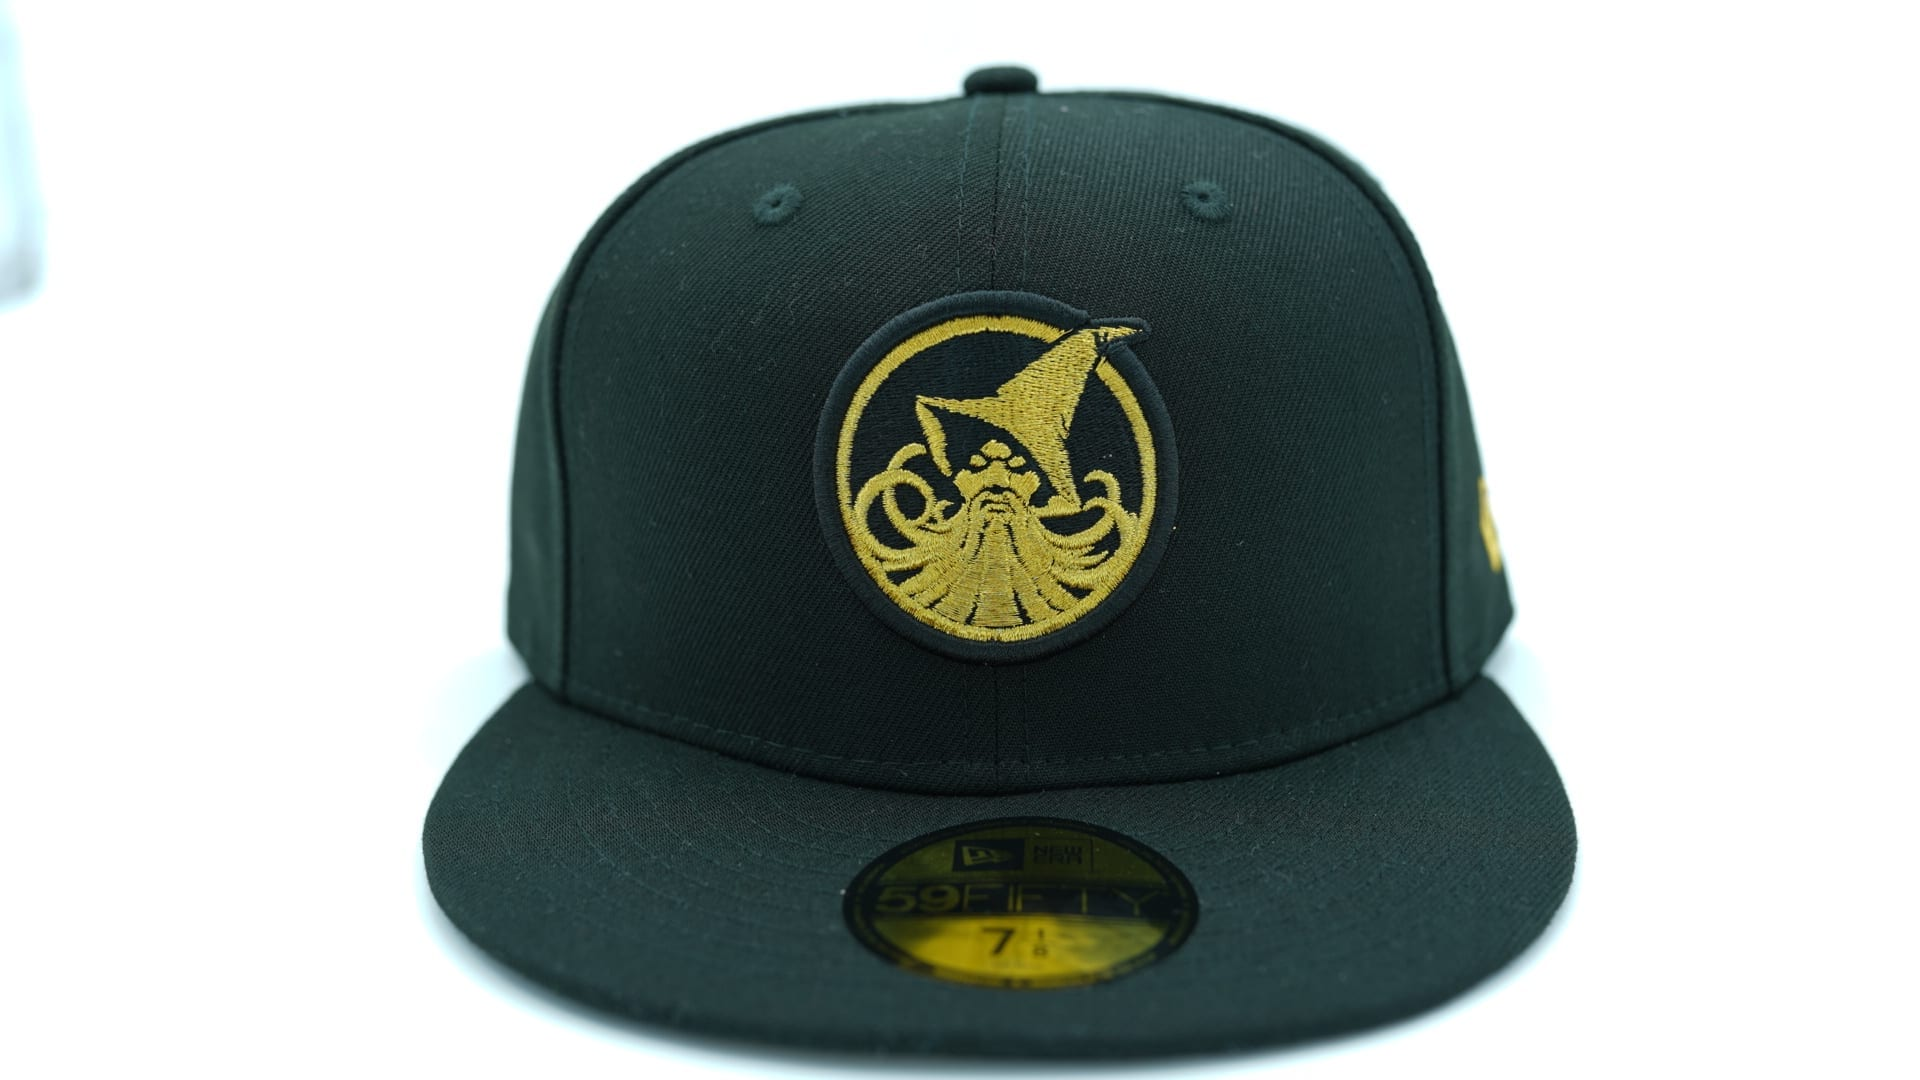 a6384074e008c New Fitteds   HAT CLUB  NEW ERA x MLB「On-Field Umpire」59Fifty Cap ...